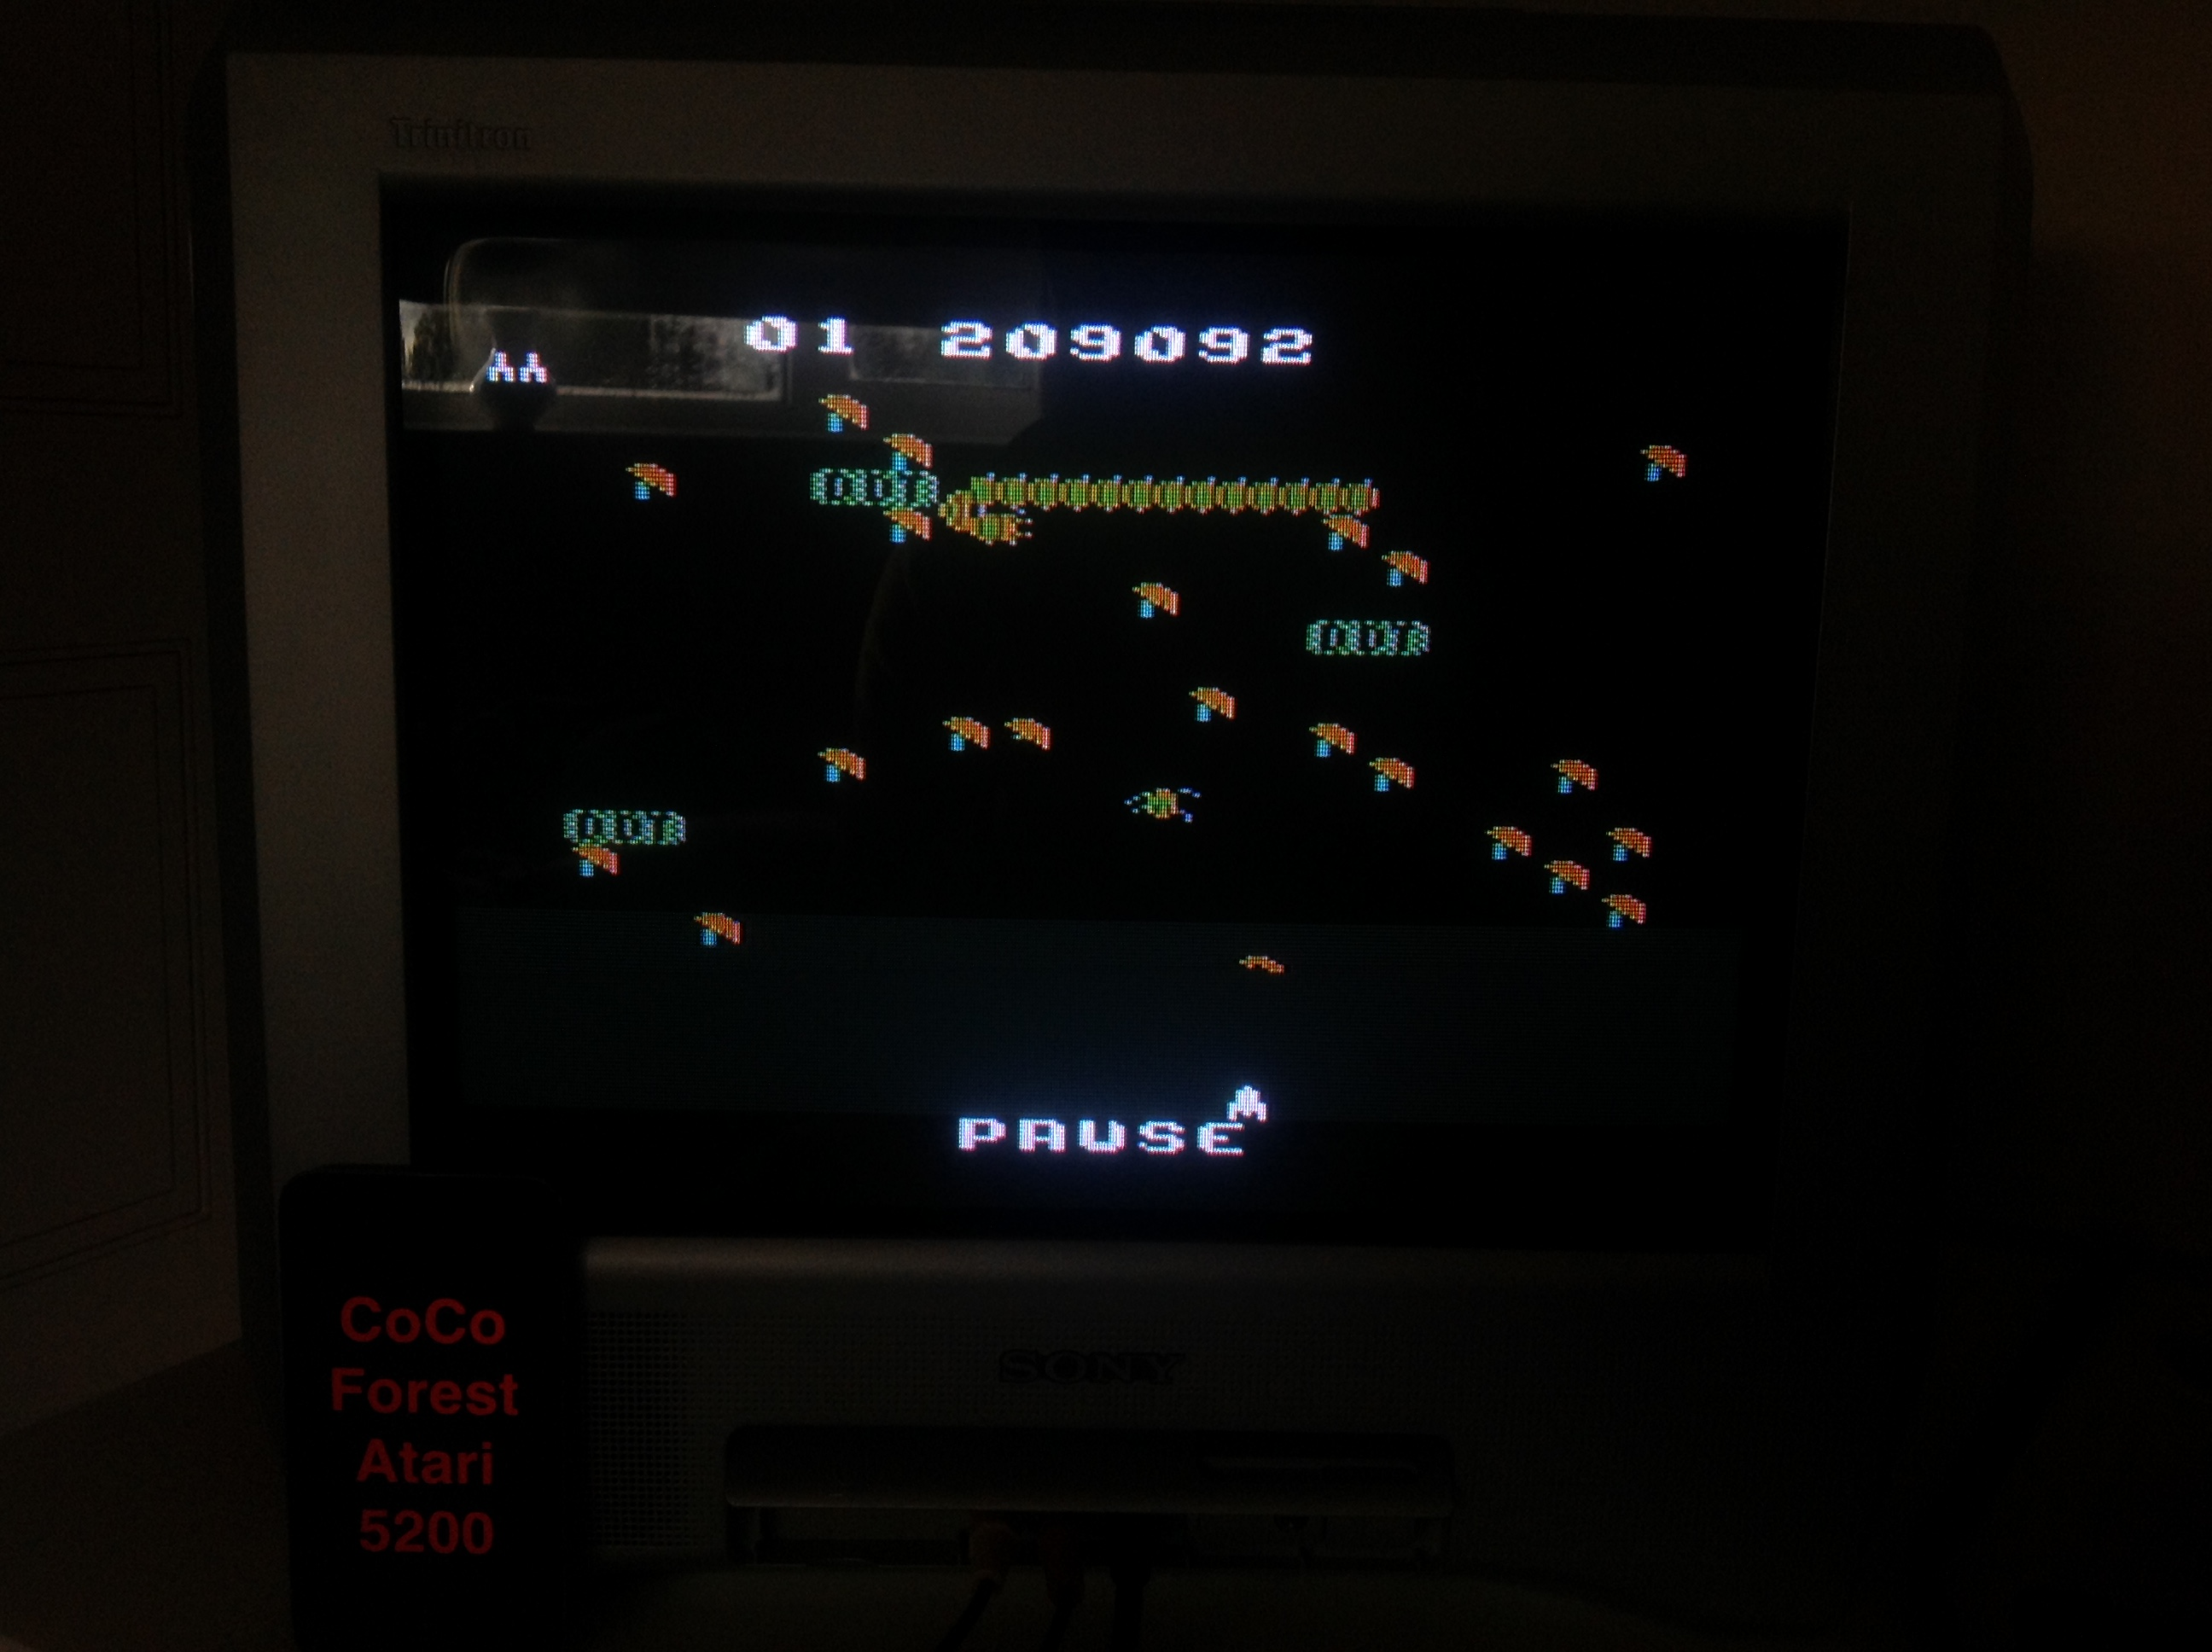 CoCoForest: Millipede (Atari 5200) 209,092 points on 2015-11-17 09:06:53